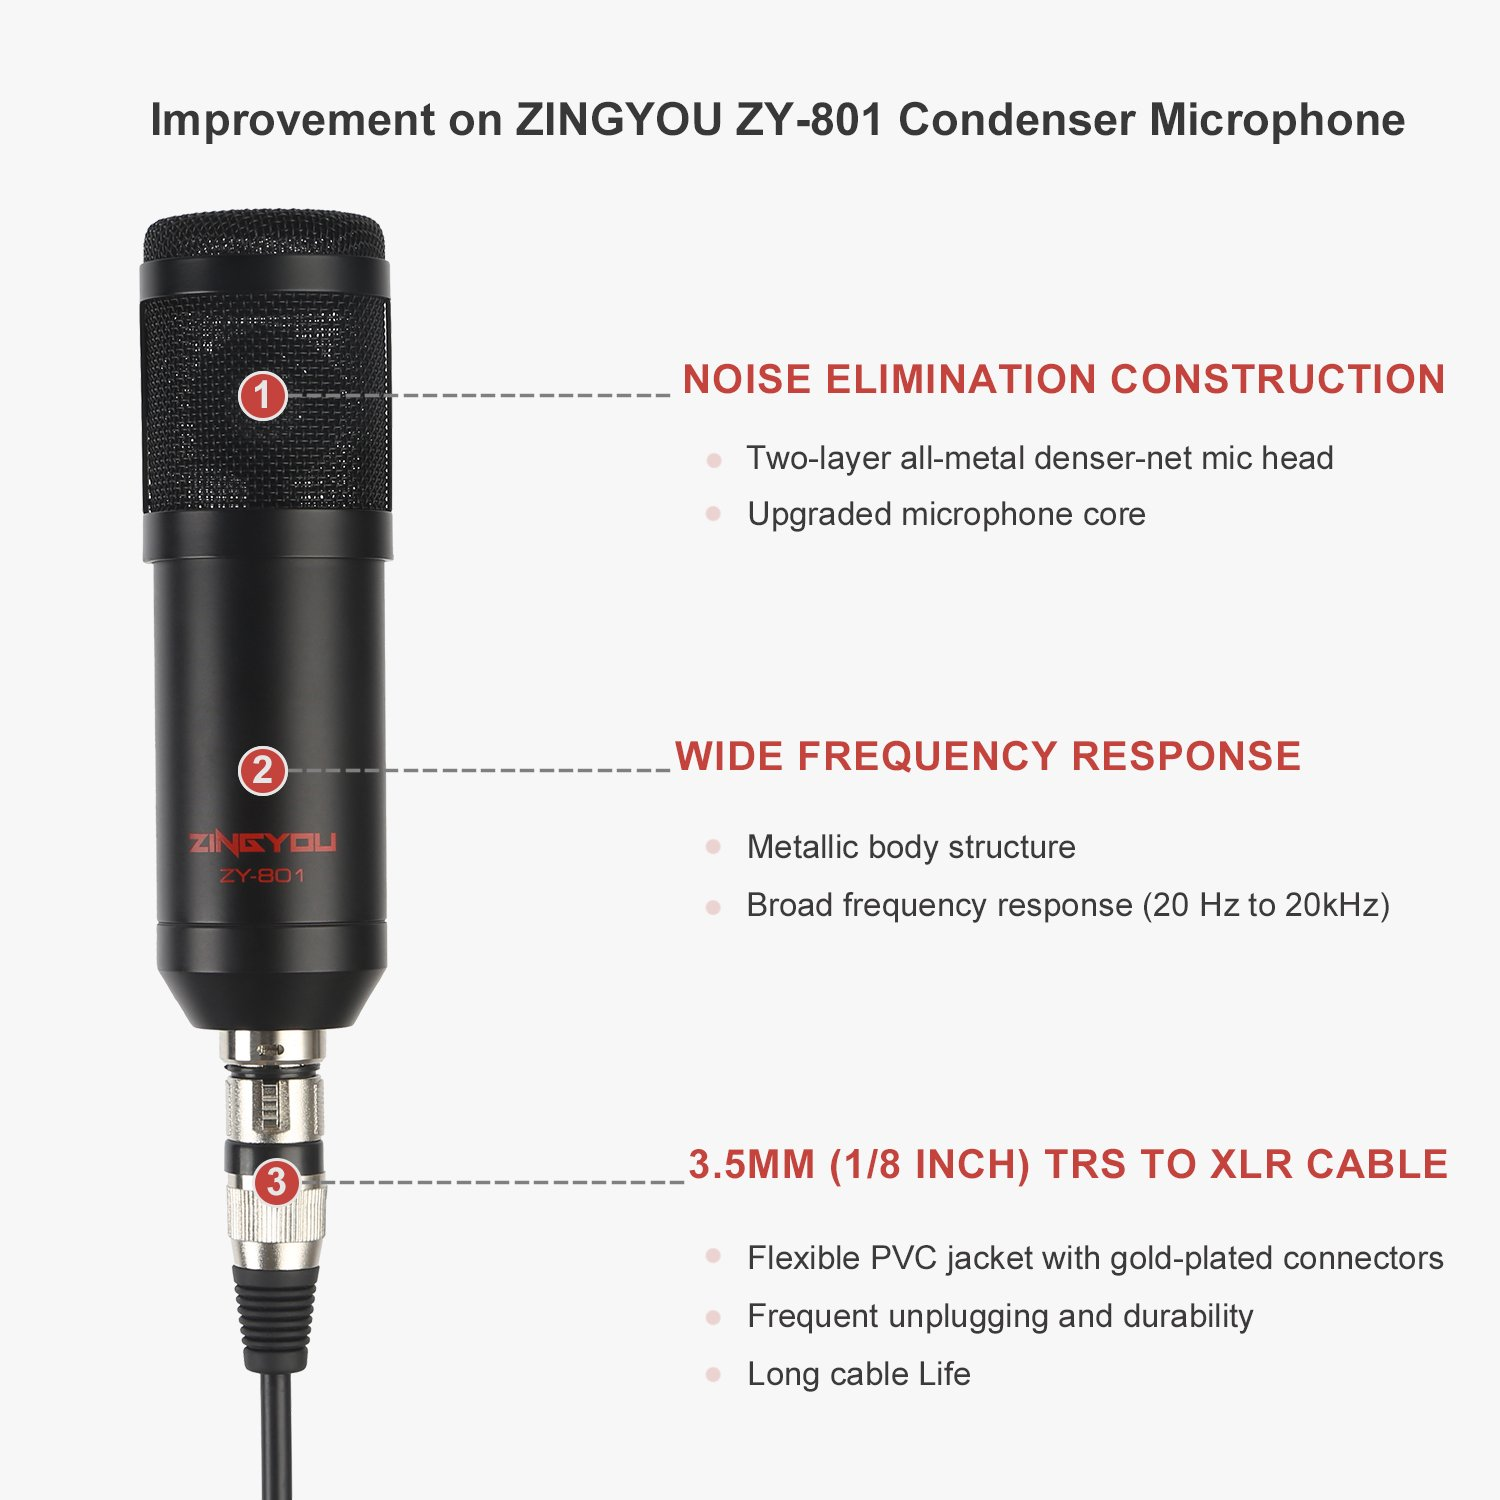 ZINGYOU ZY-801 Professional Studio Microphone, Desktop Computer Cardioid Condenser Mic with Tripod for PC Recording, Broadcasting (Black) by ZINGYOU (Image #3)